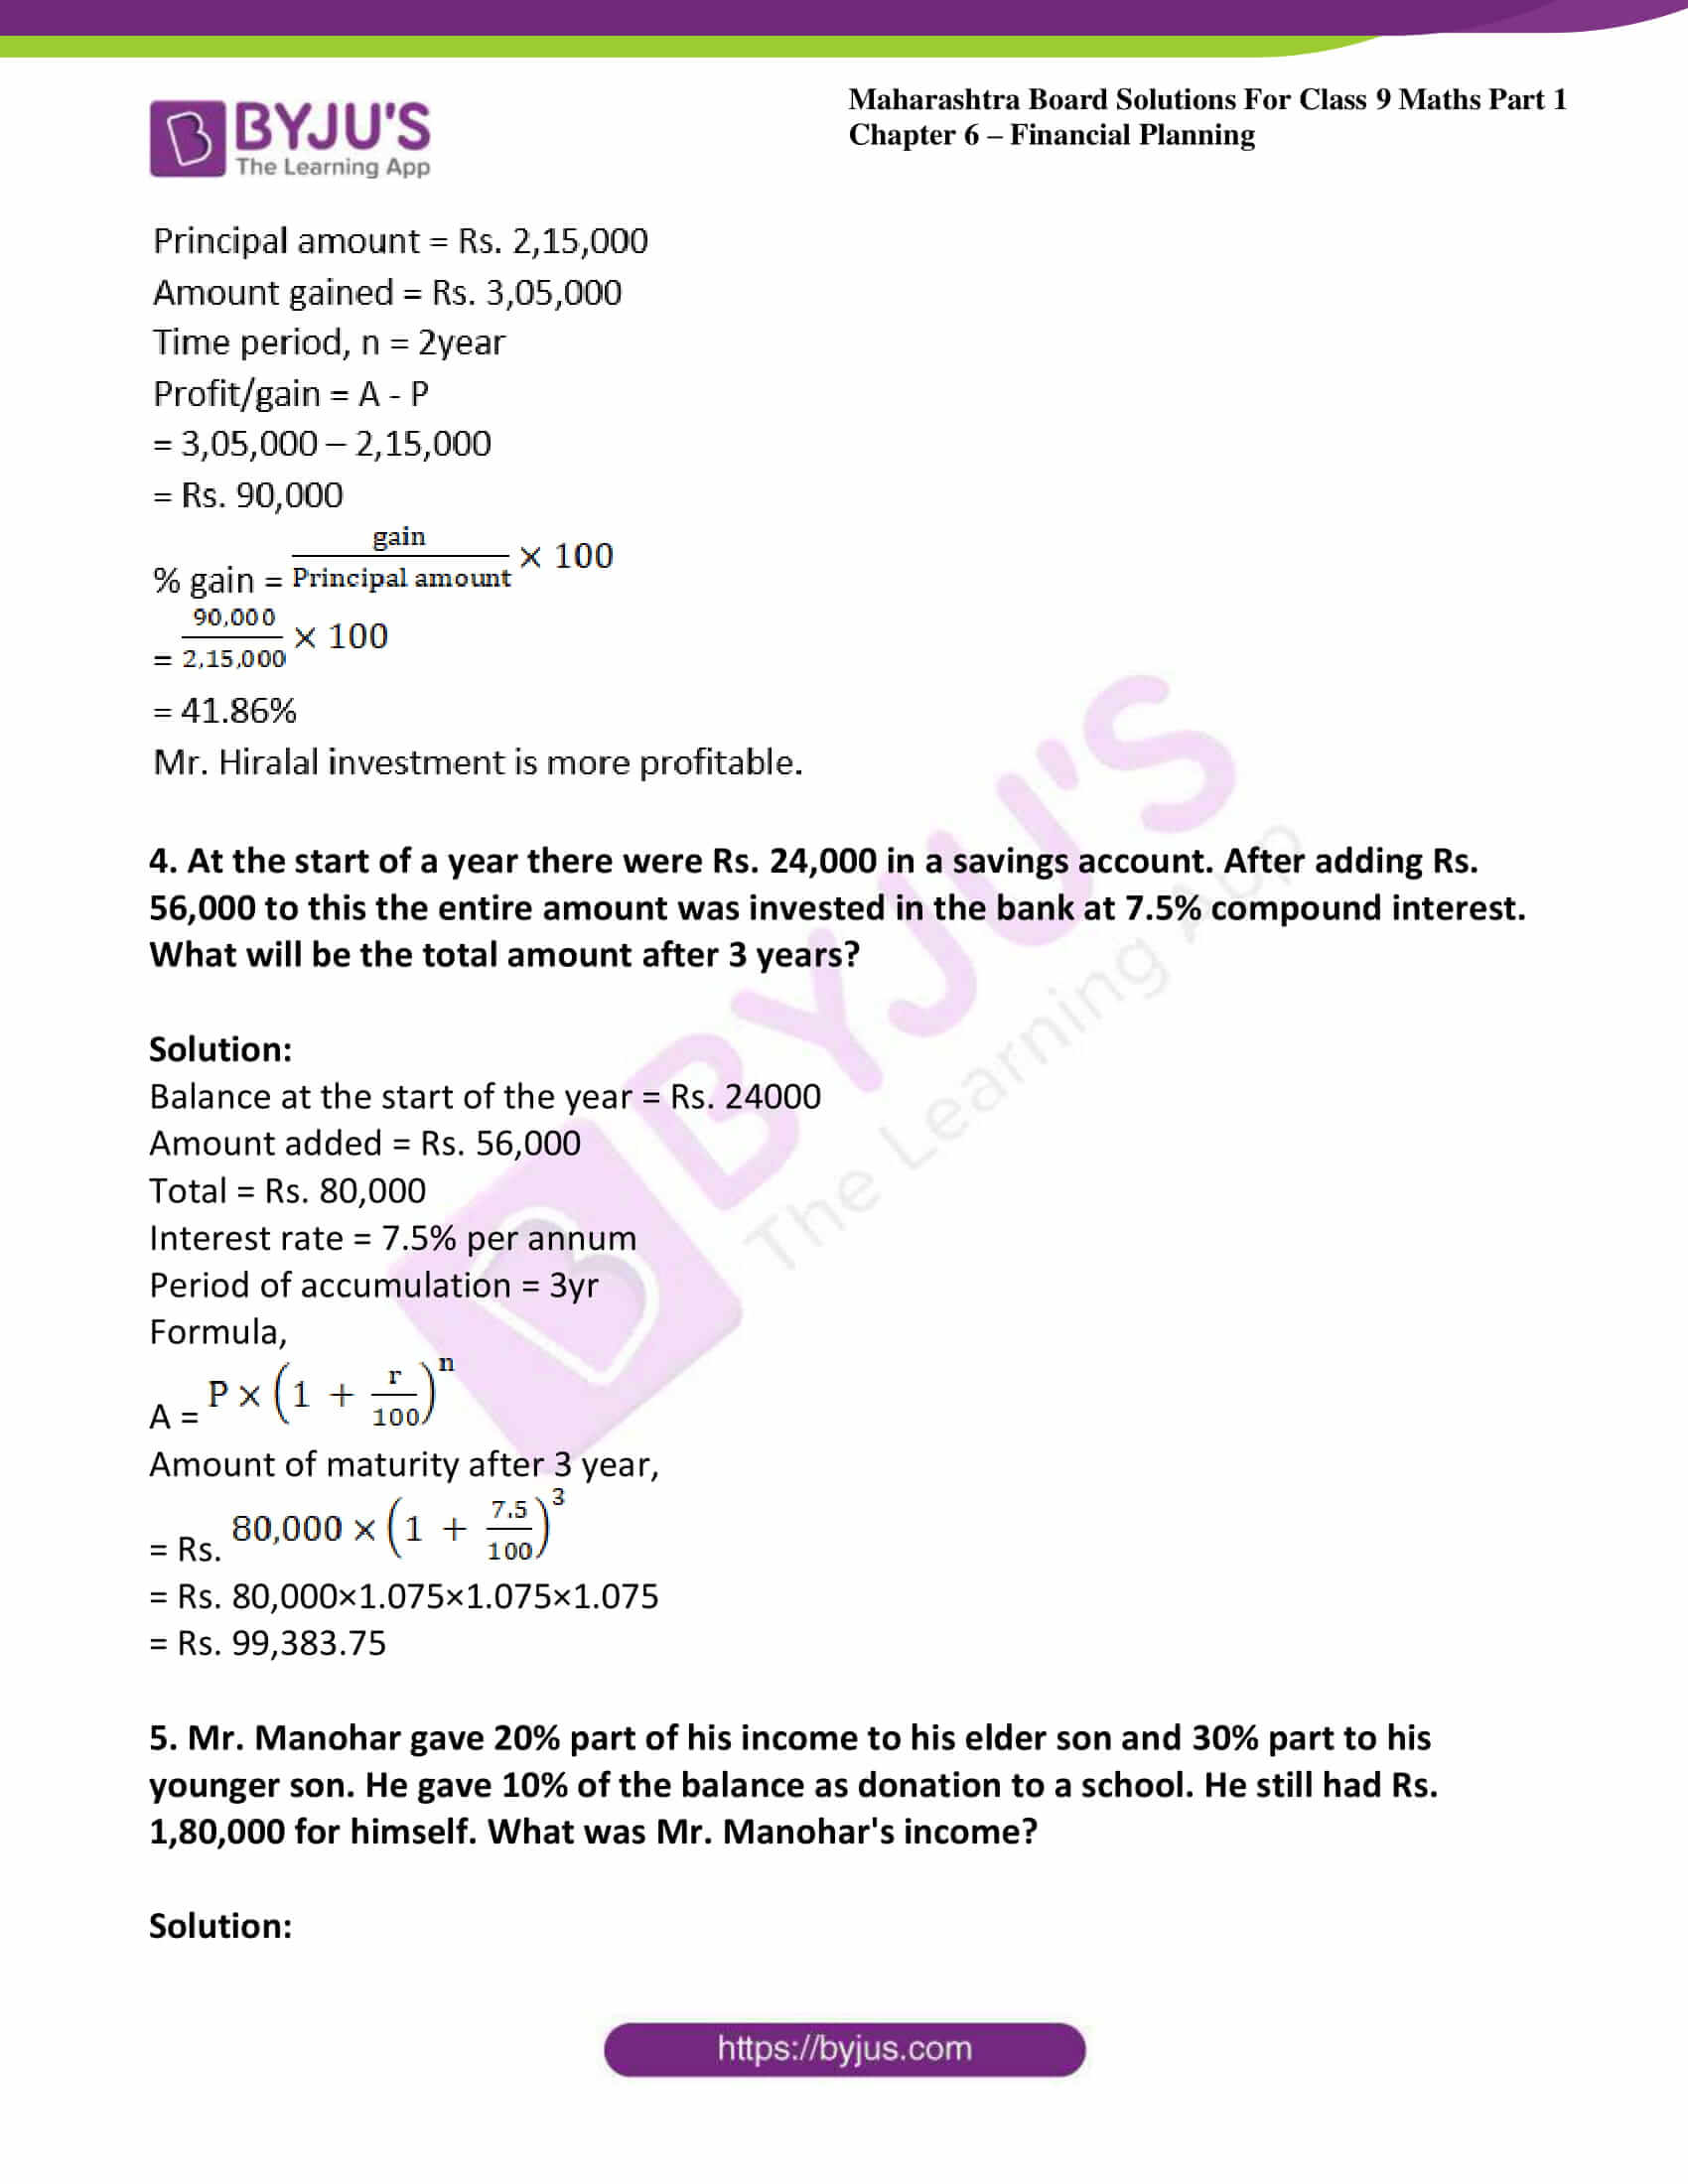 msbshse sol class 9 maths part 1 chapter 6 financial planing 10